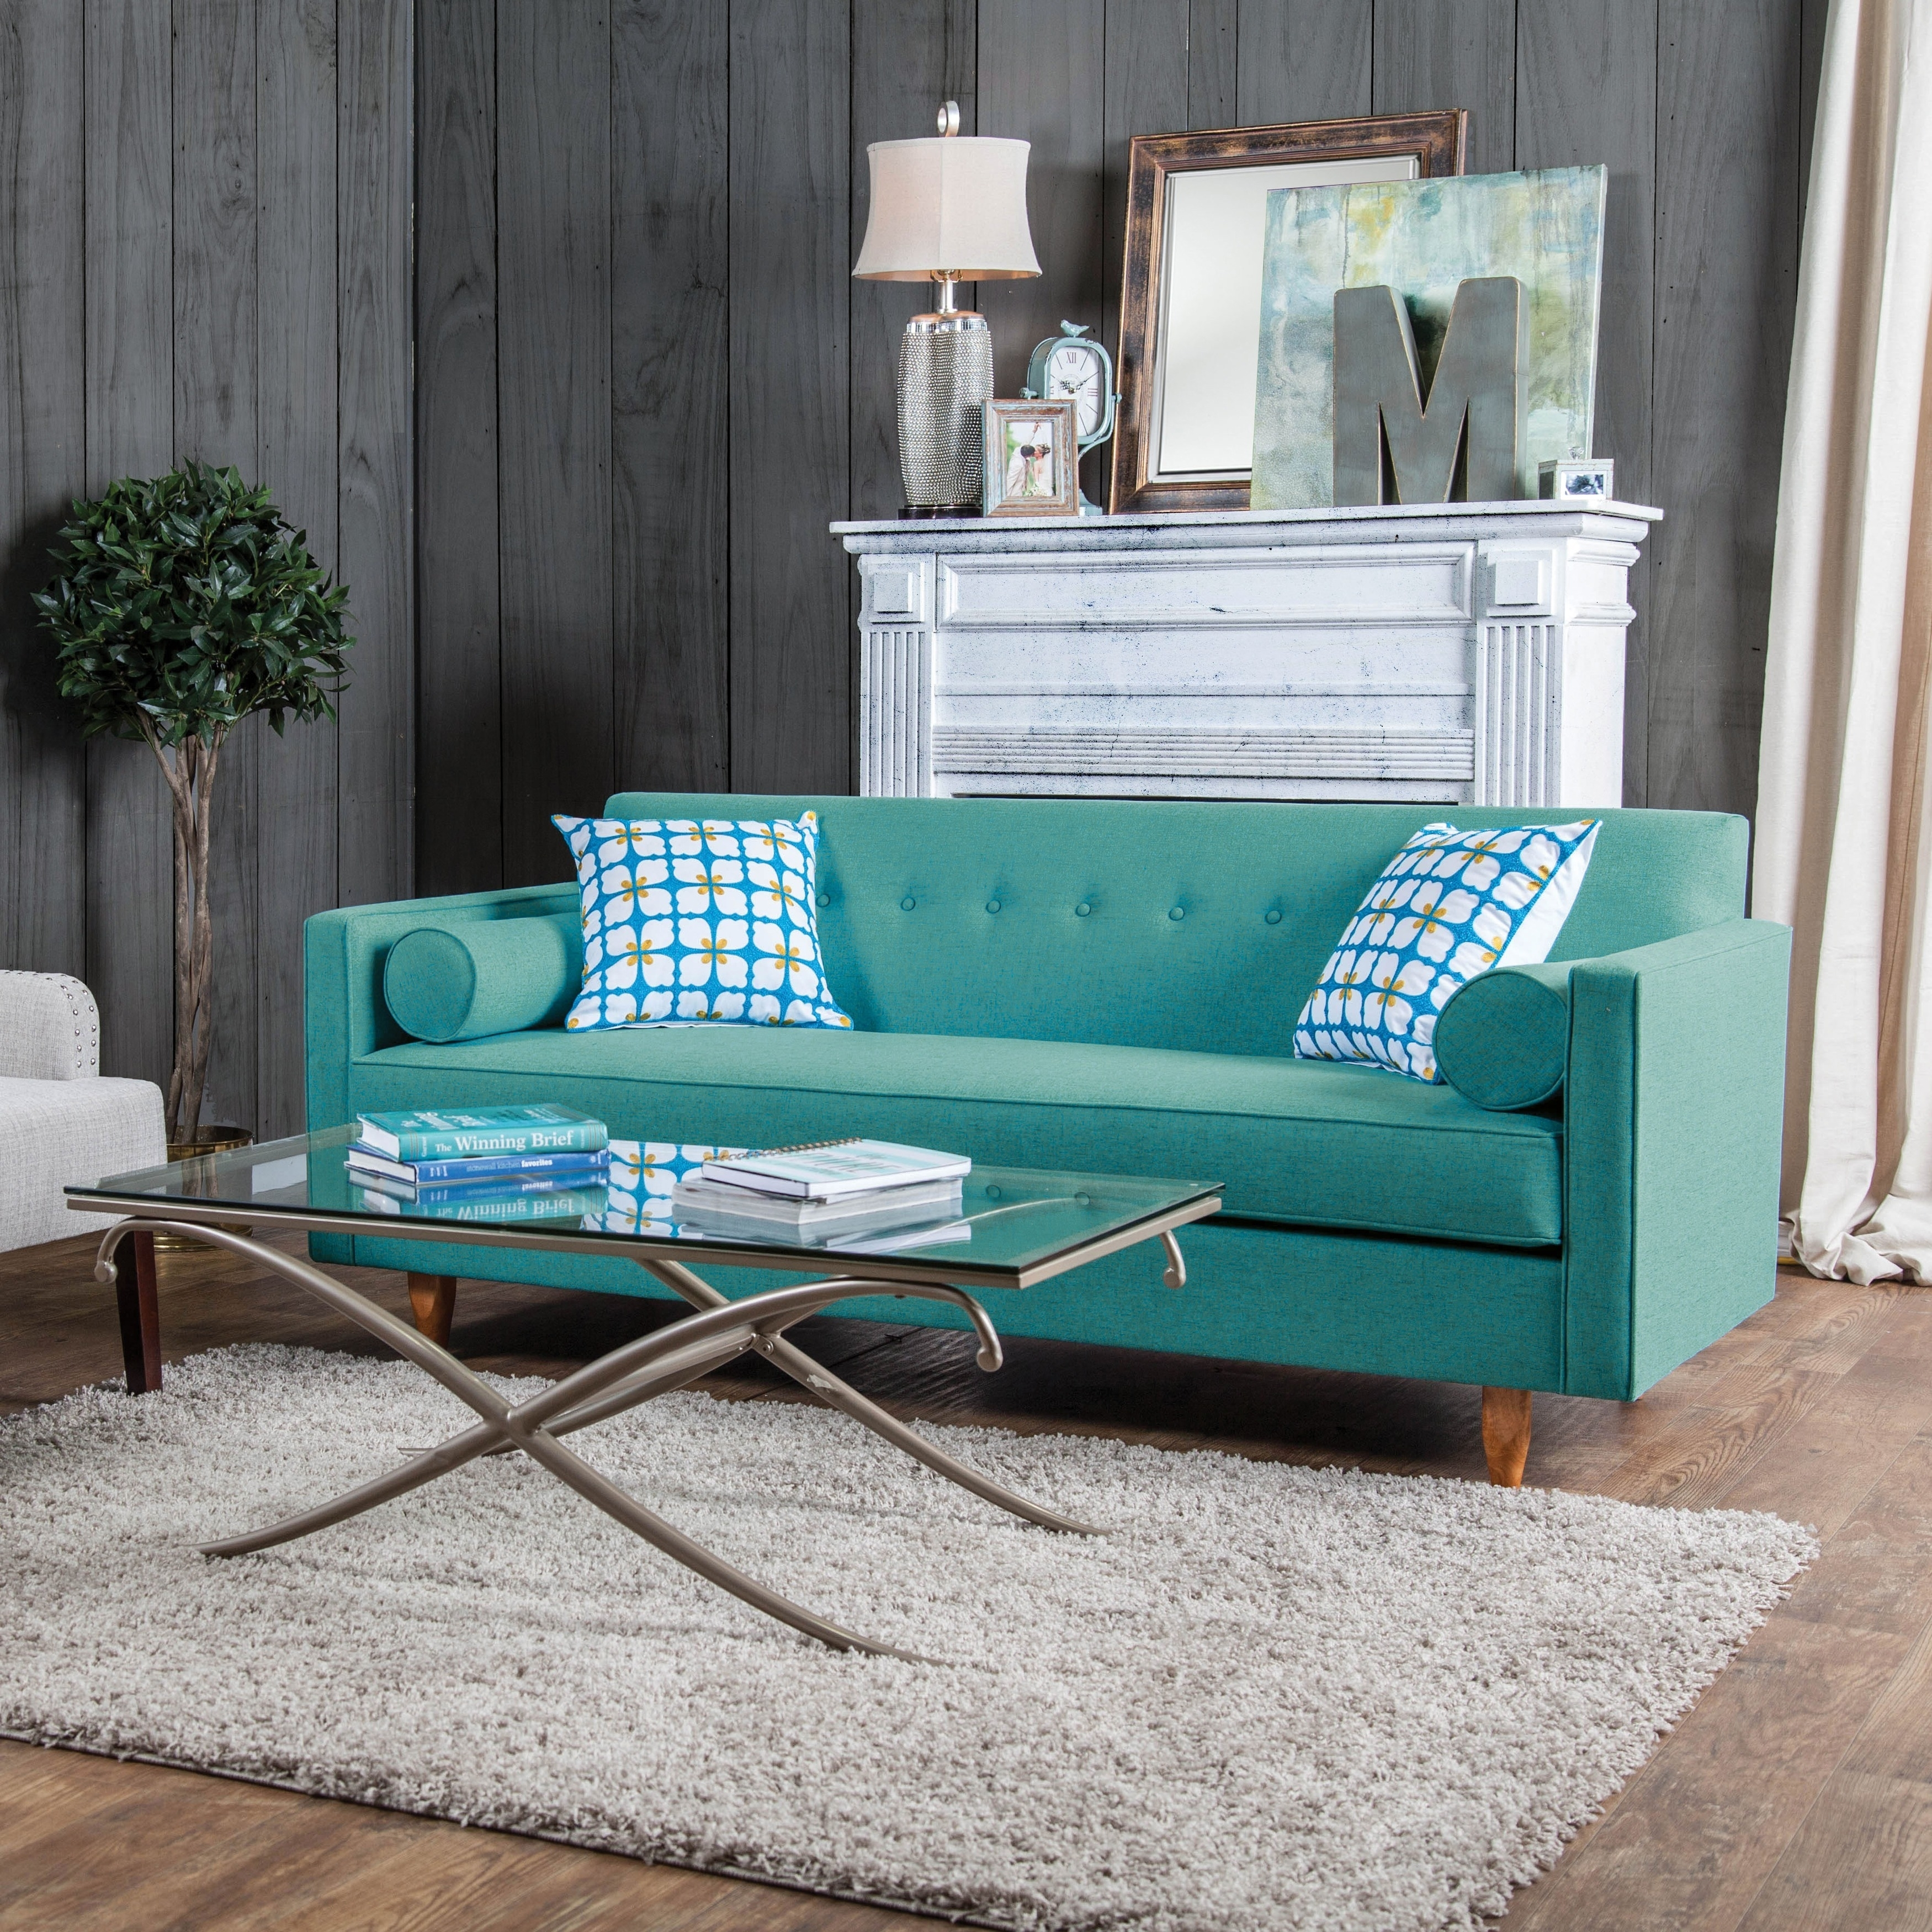 Living Room : Turquoise Couch Kids Couch Turquoise Sofas & Loveseats Regarding Turquoise Sofas (Image 3 of 10)